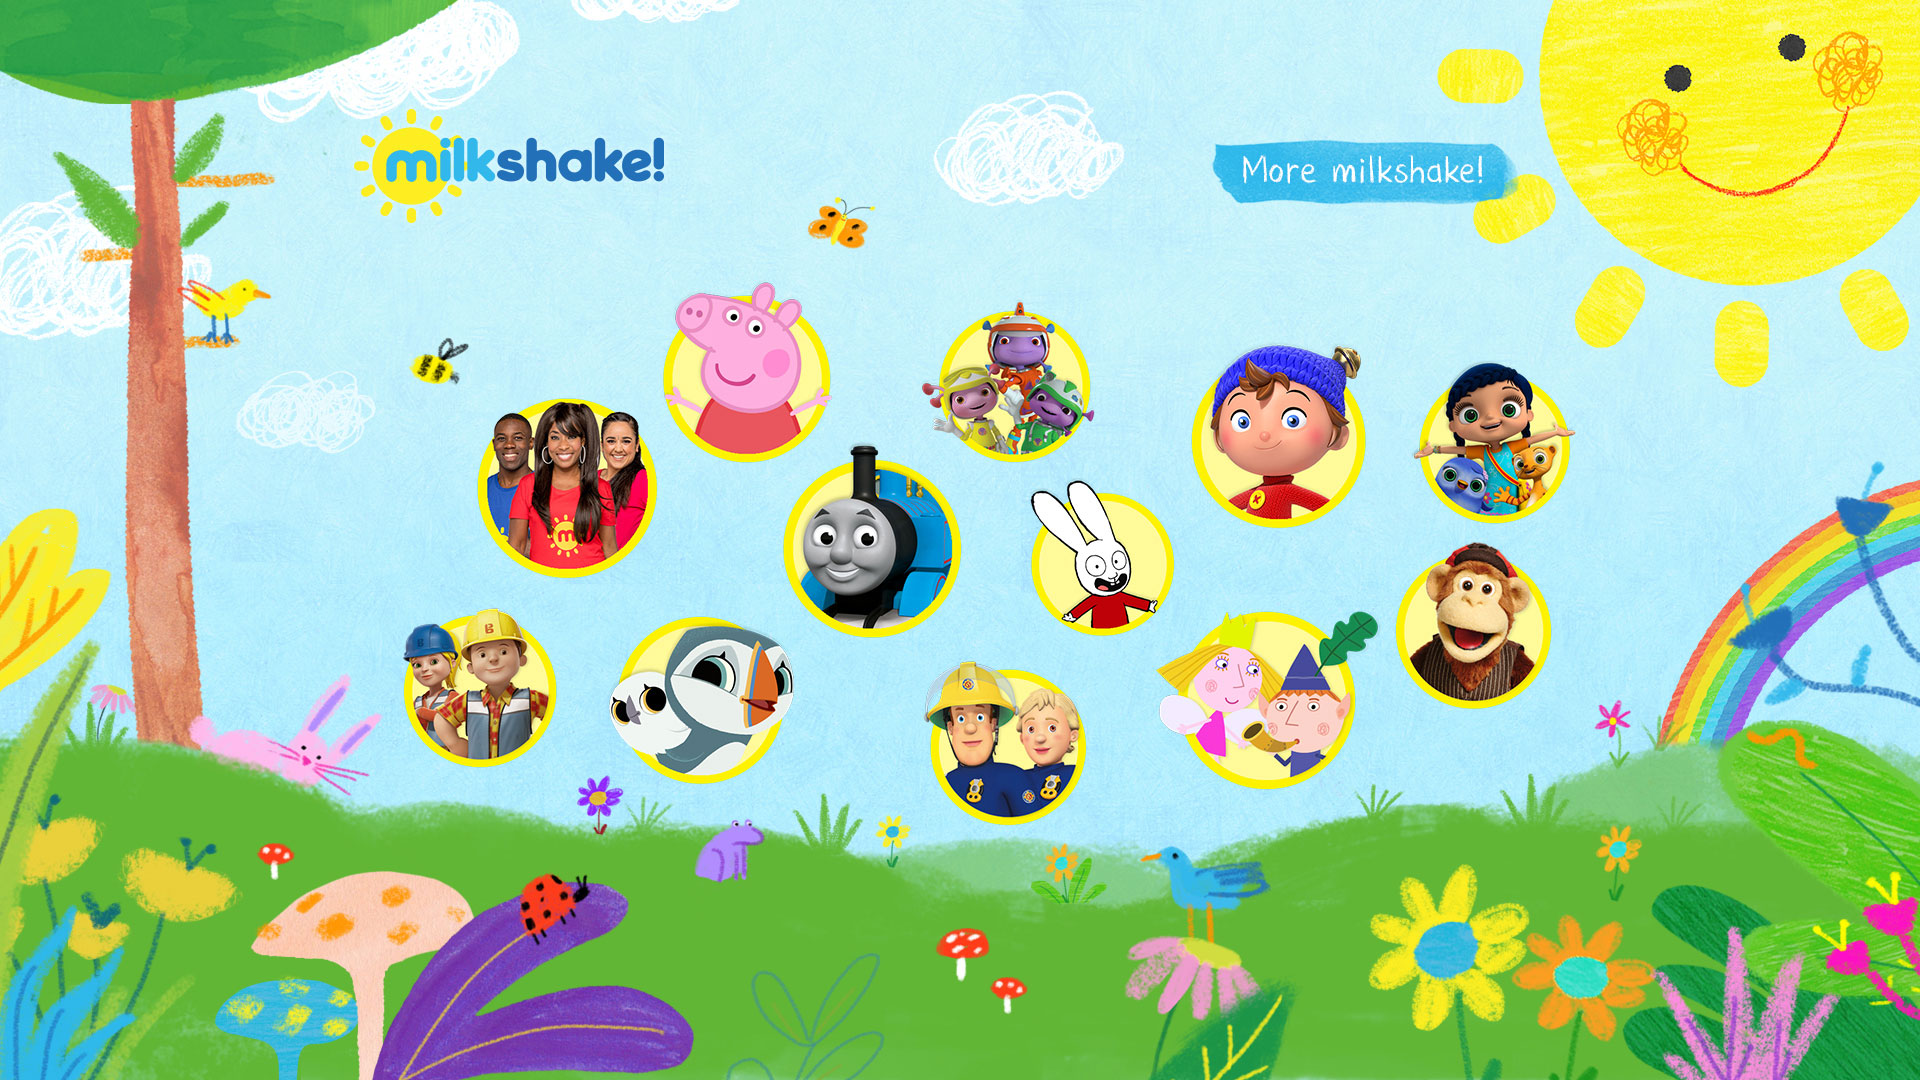 cbeebies birthday card repeat ; NEW-welcome-to-the-milkshake-website